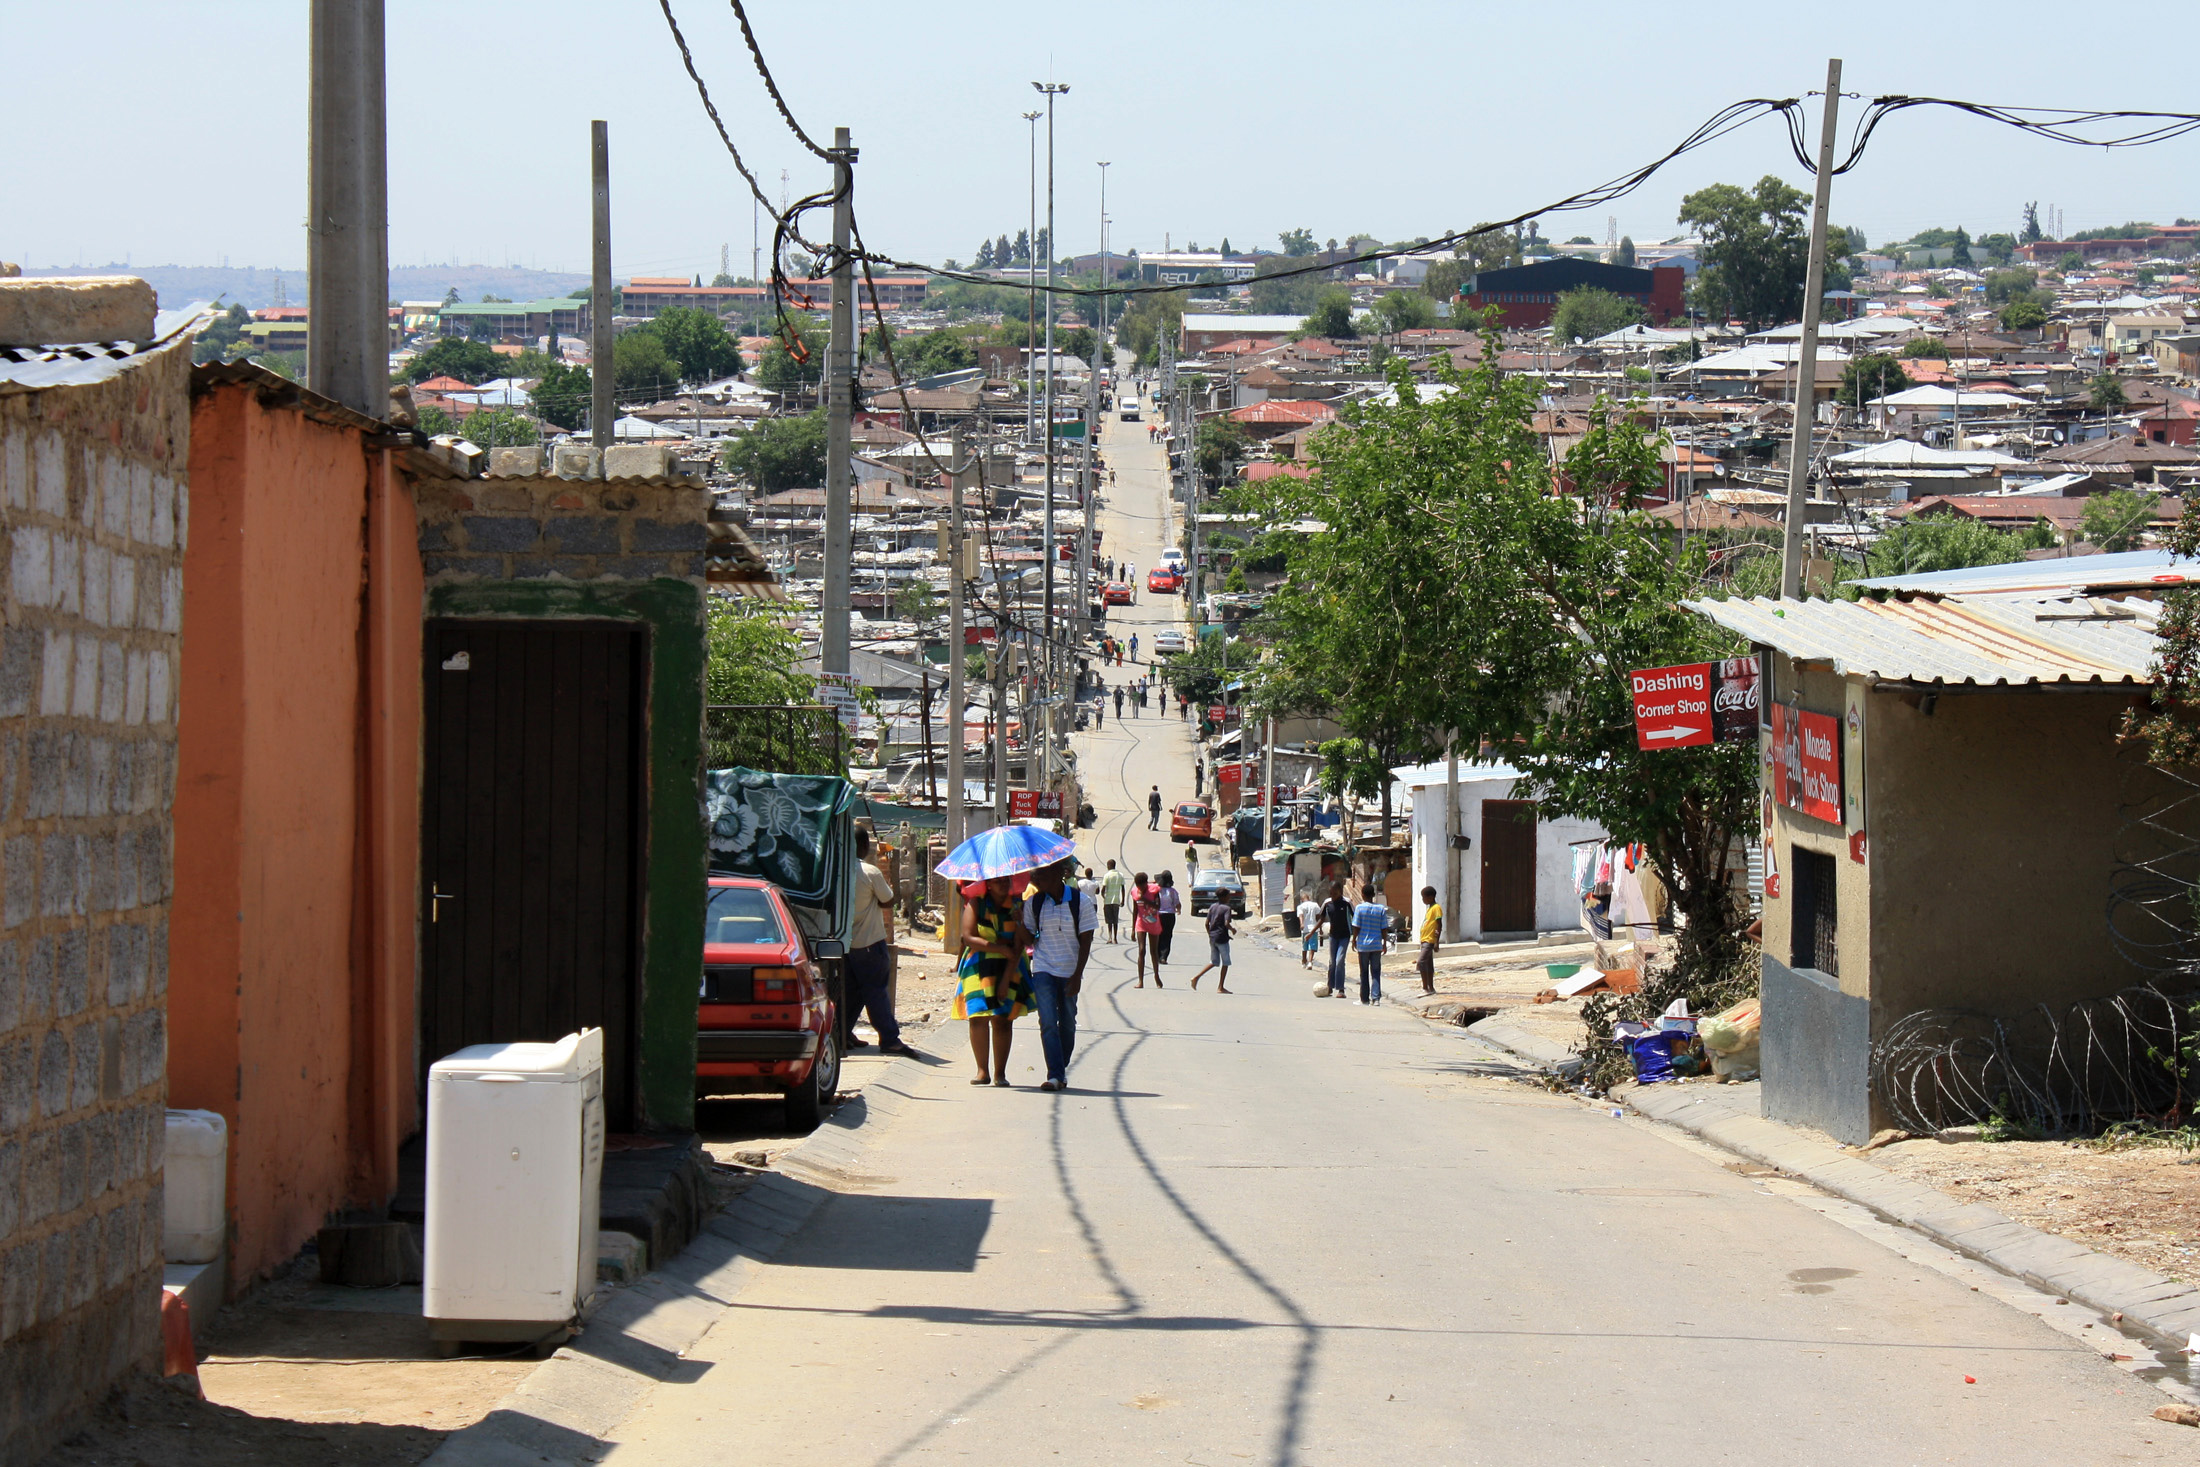 Alexandra, one of the oldest black townships in South Africa turned 100 in 2012 but living conditions have not improved considerably since apartheid